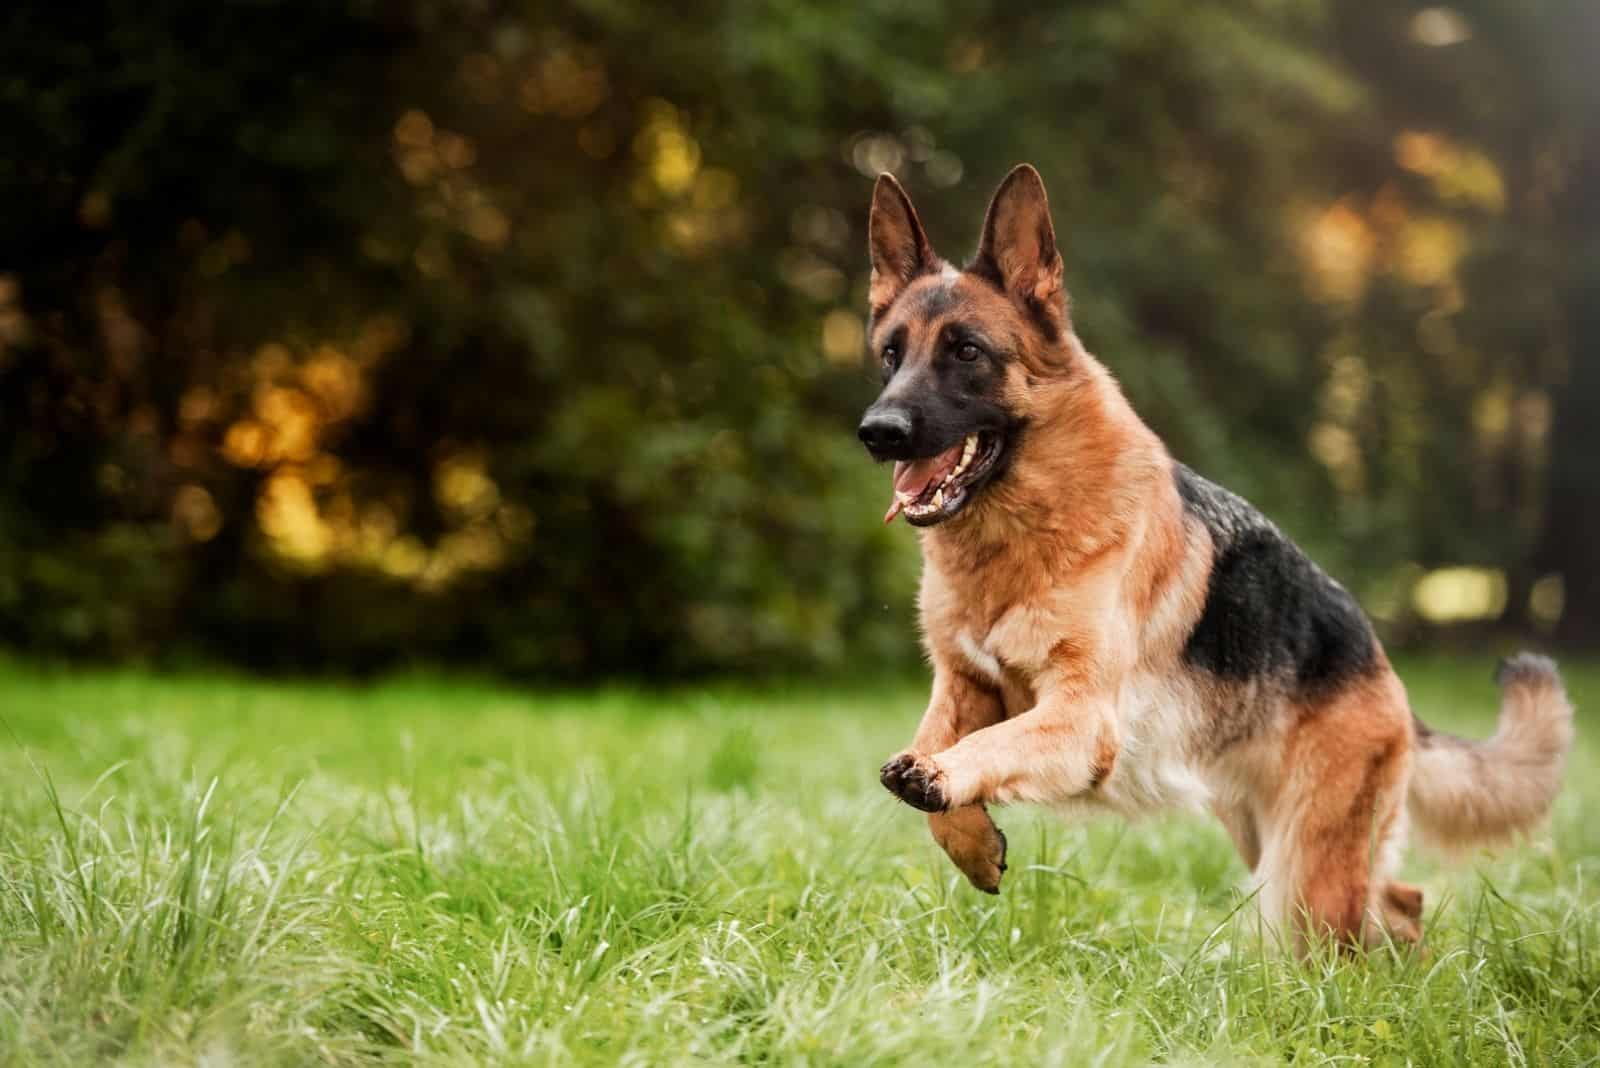 black and tan gsd running in the playground